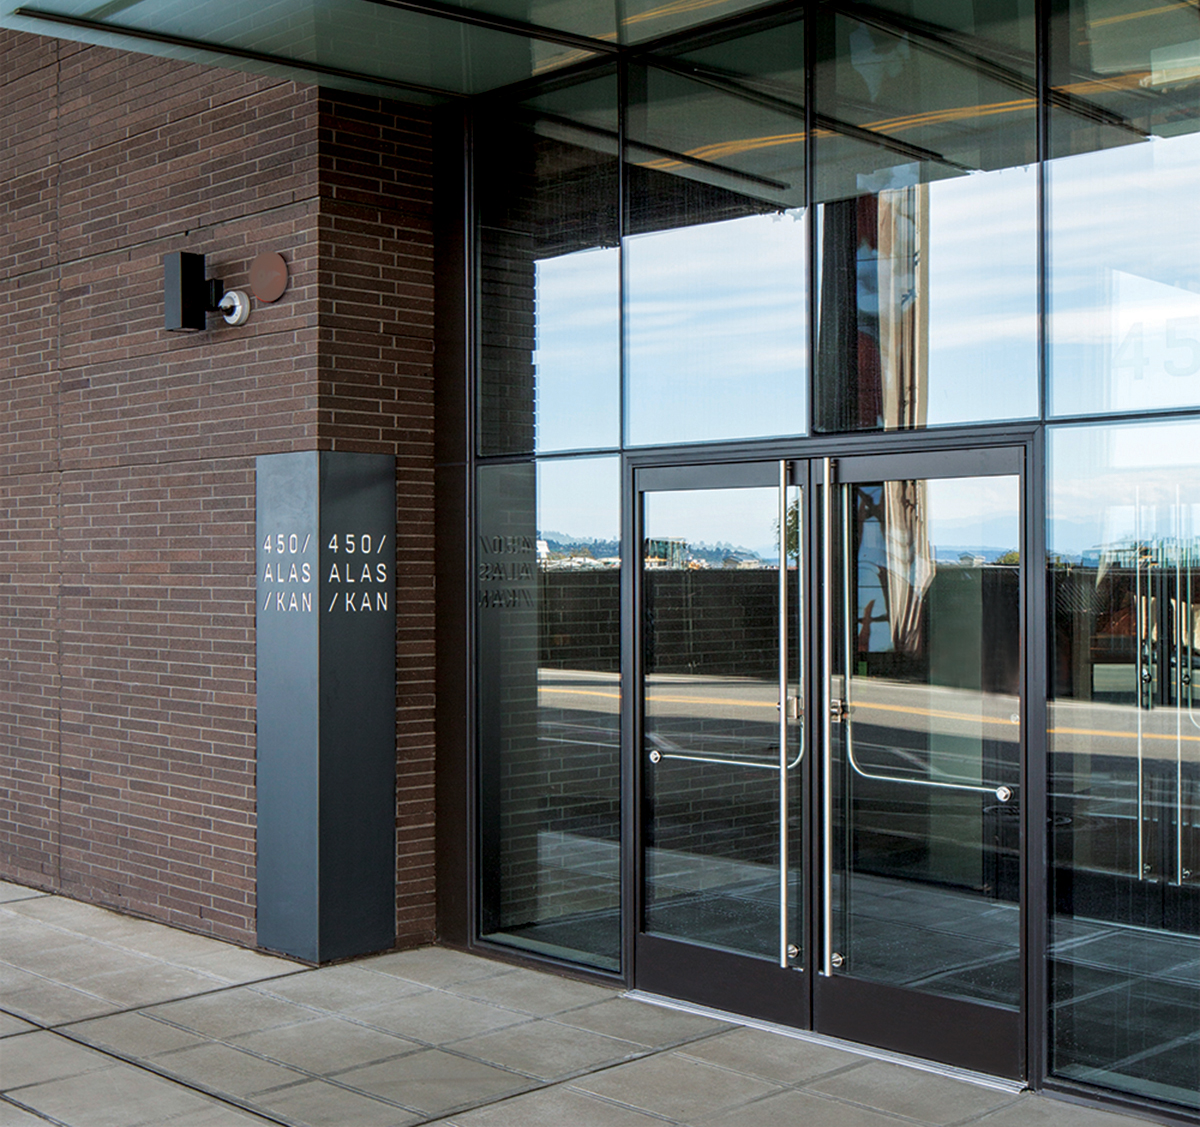 Specifying Glass Entrances In The New Era Of Stringent